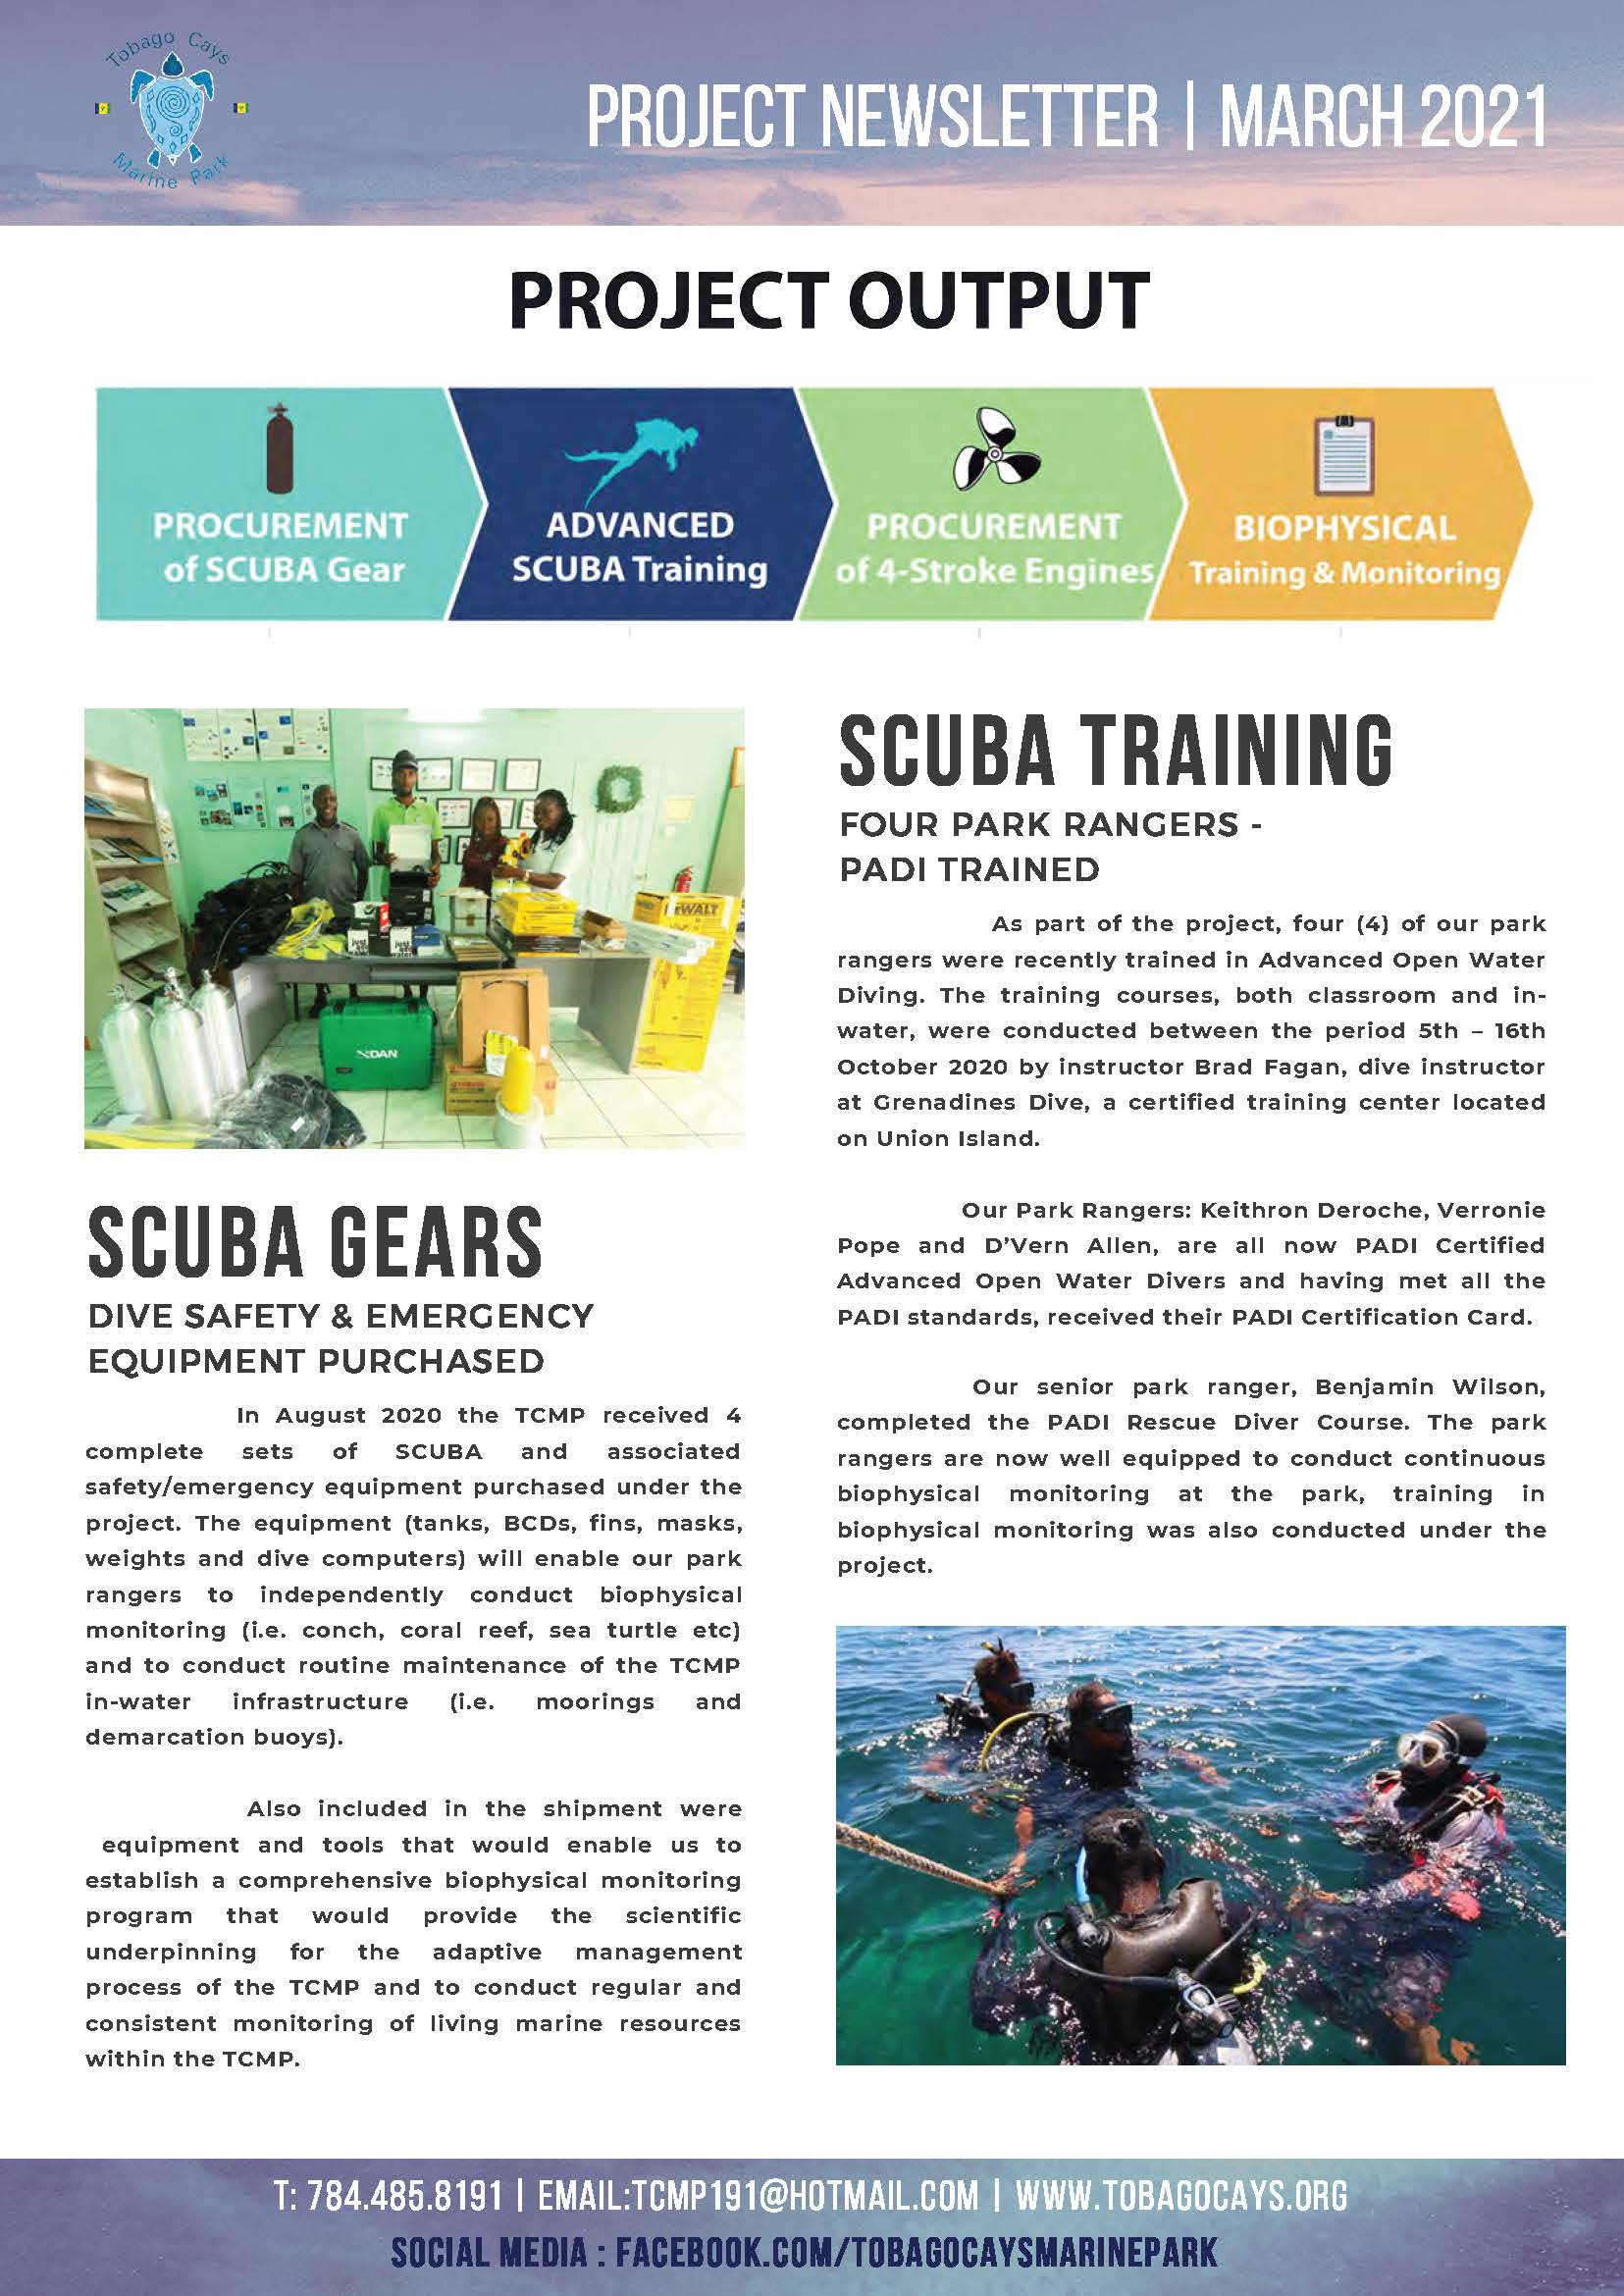 Tobago Cays Marine Park Project Newsletter